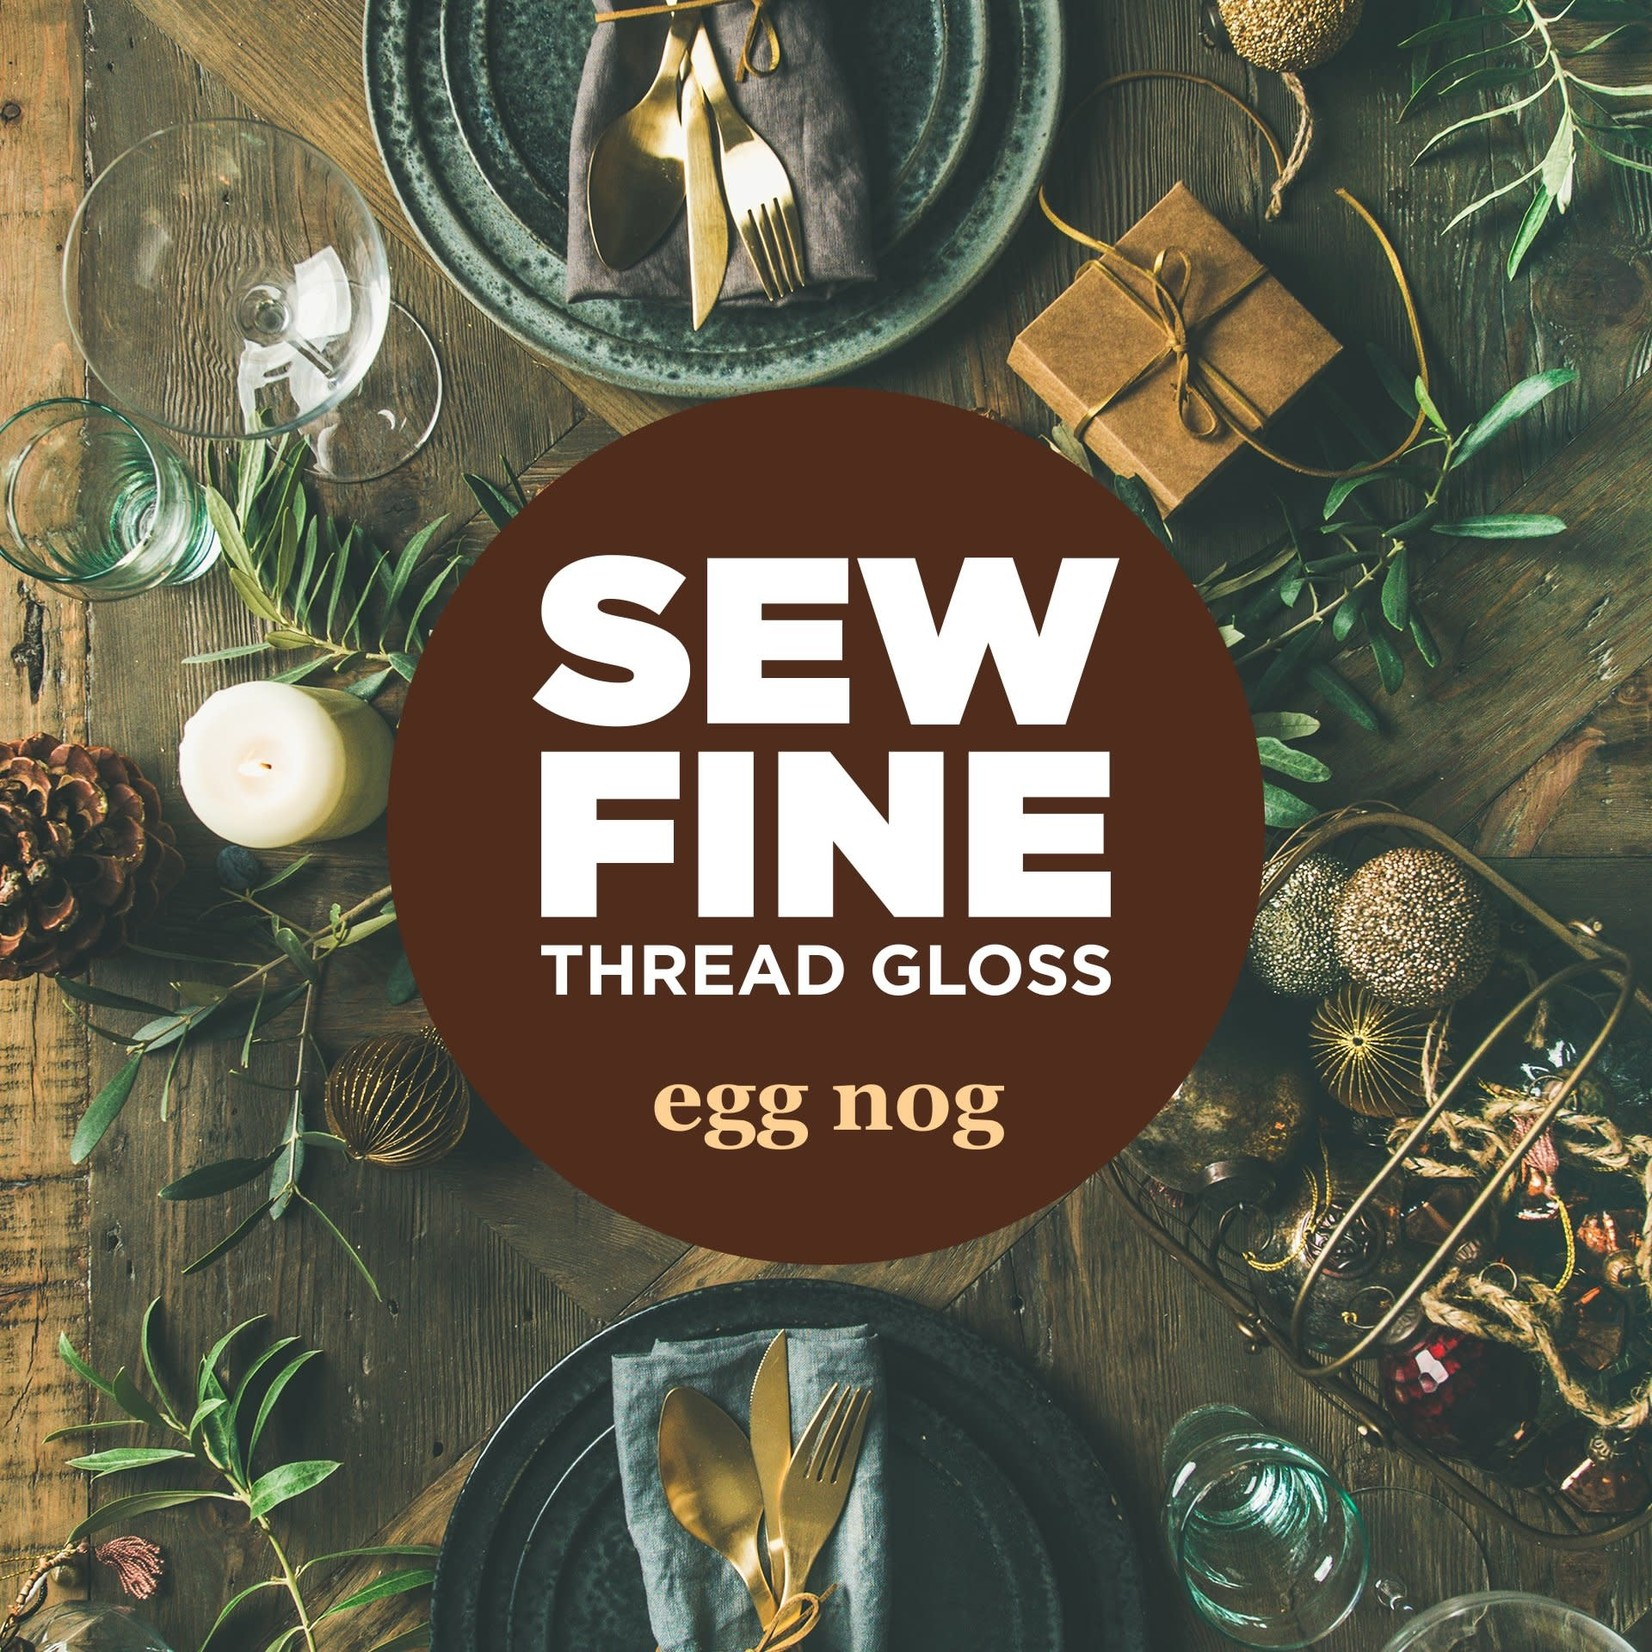 Sew Fine Sew Fine Thread Gloss: Egg Nog 0.5 oz